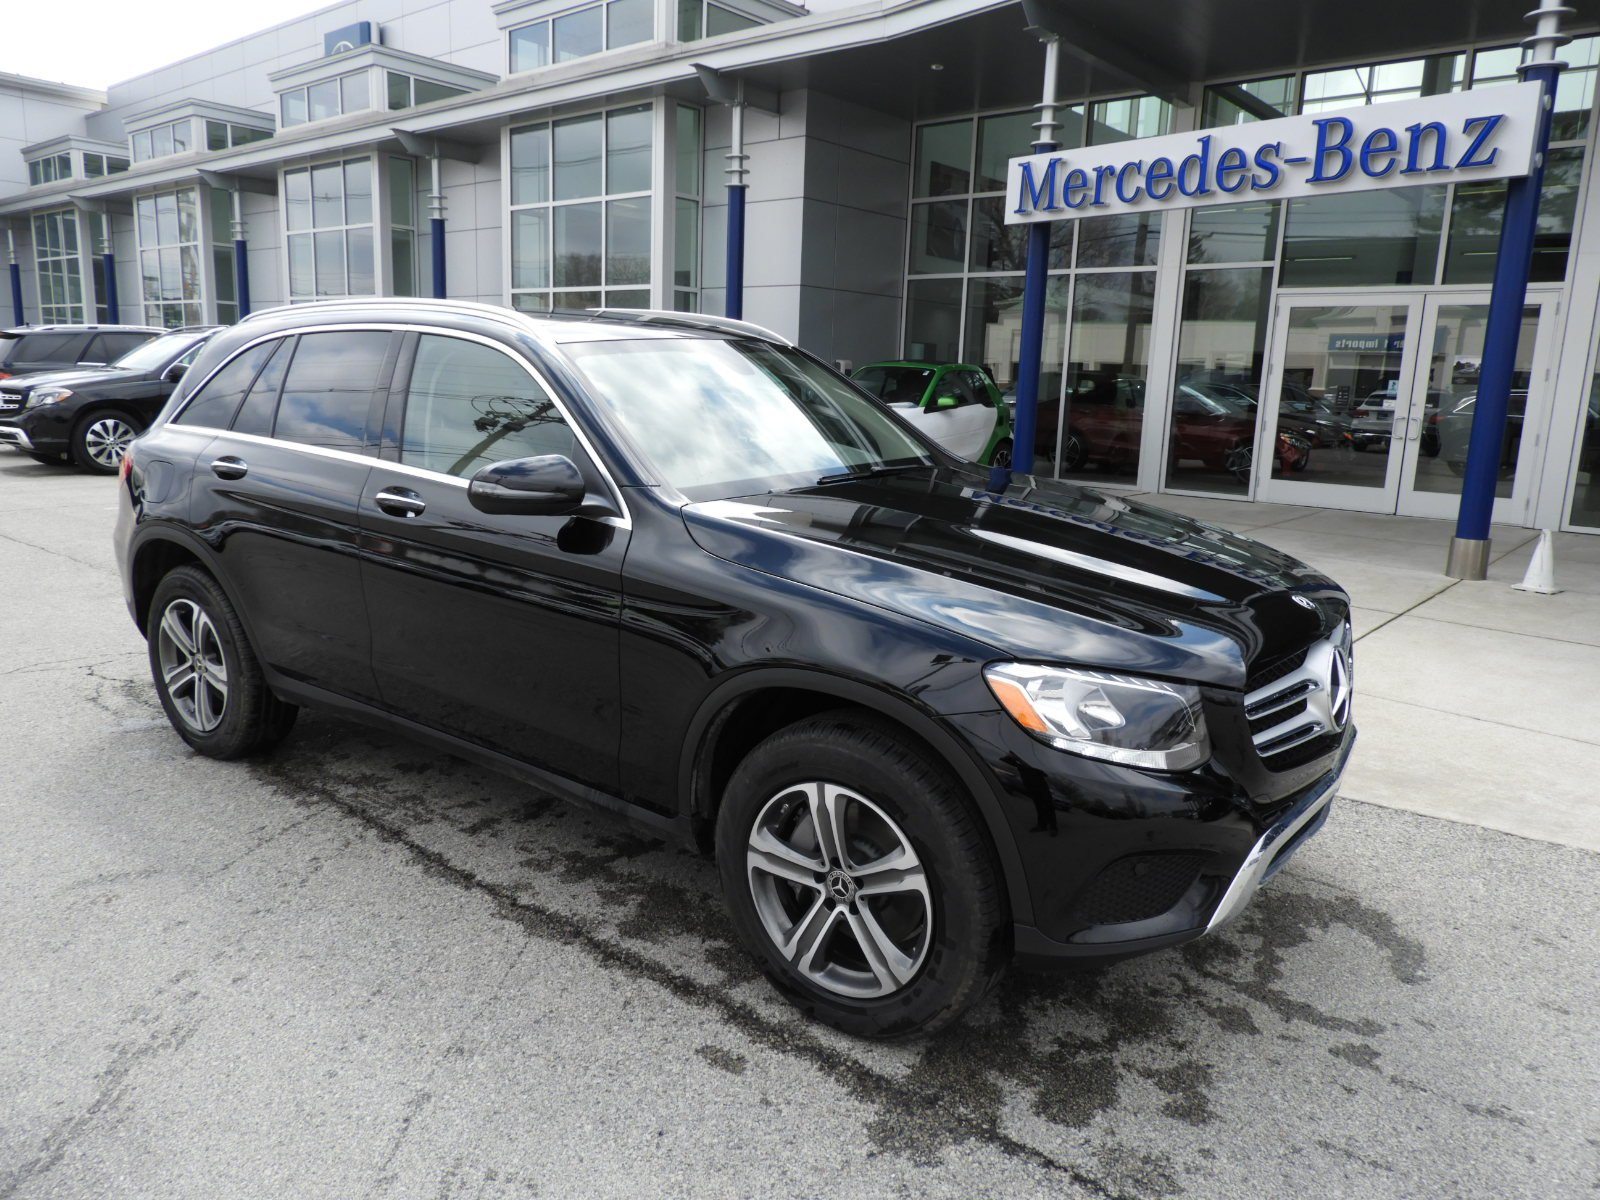 pre owned 2018 mercedes benz glc glc 300 4matic suv sport utility in louisville us11205. Black Bedroom Furniture Sets. Home Design Ideas